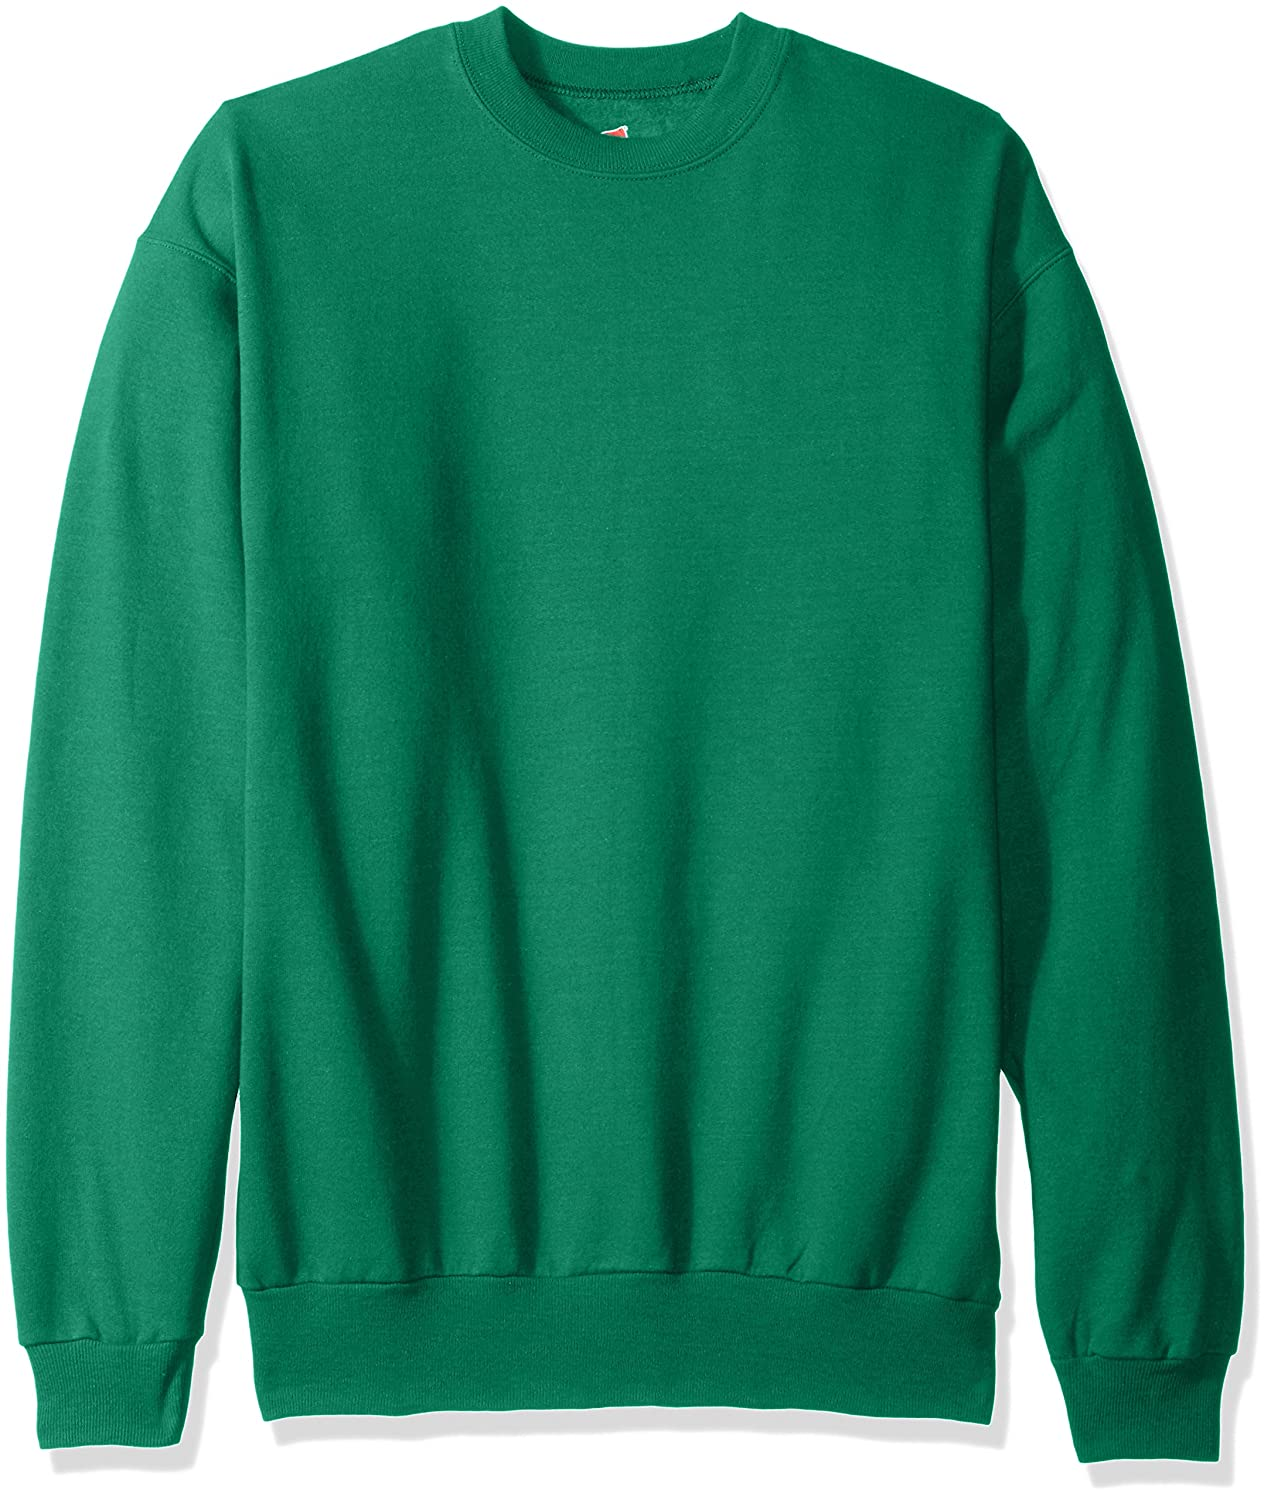 35cd2c4b Hanes Mens EcoSmart Fleece Sweatshirt Sweatshirt: Amazon.ca: Clothing &  Accessories